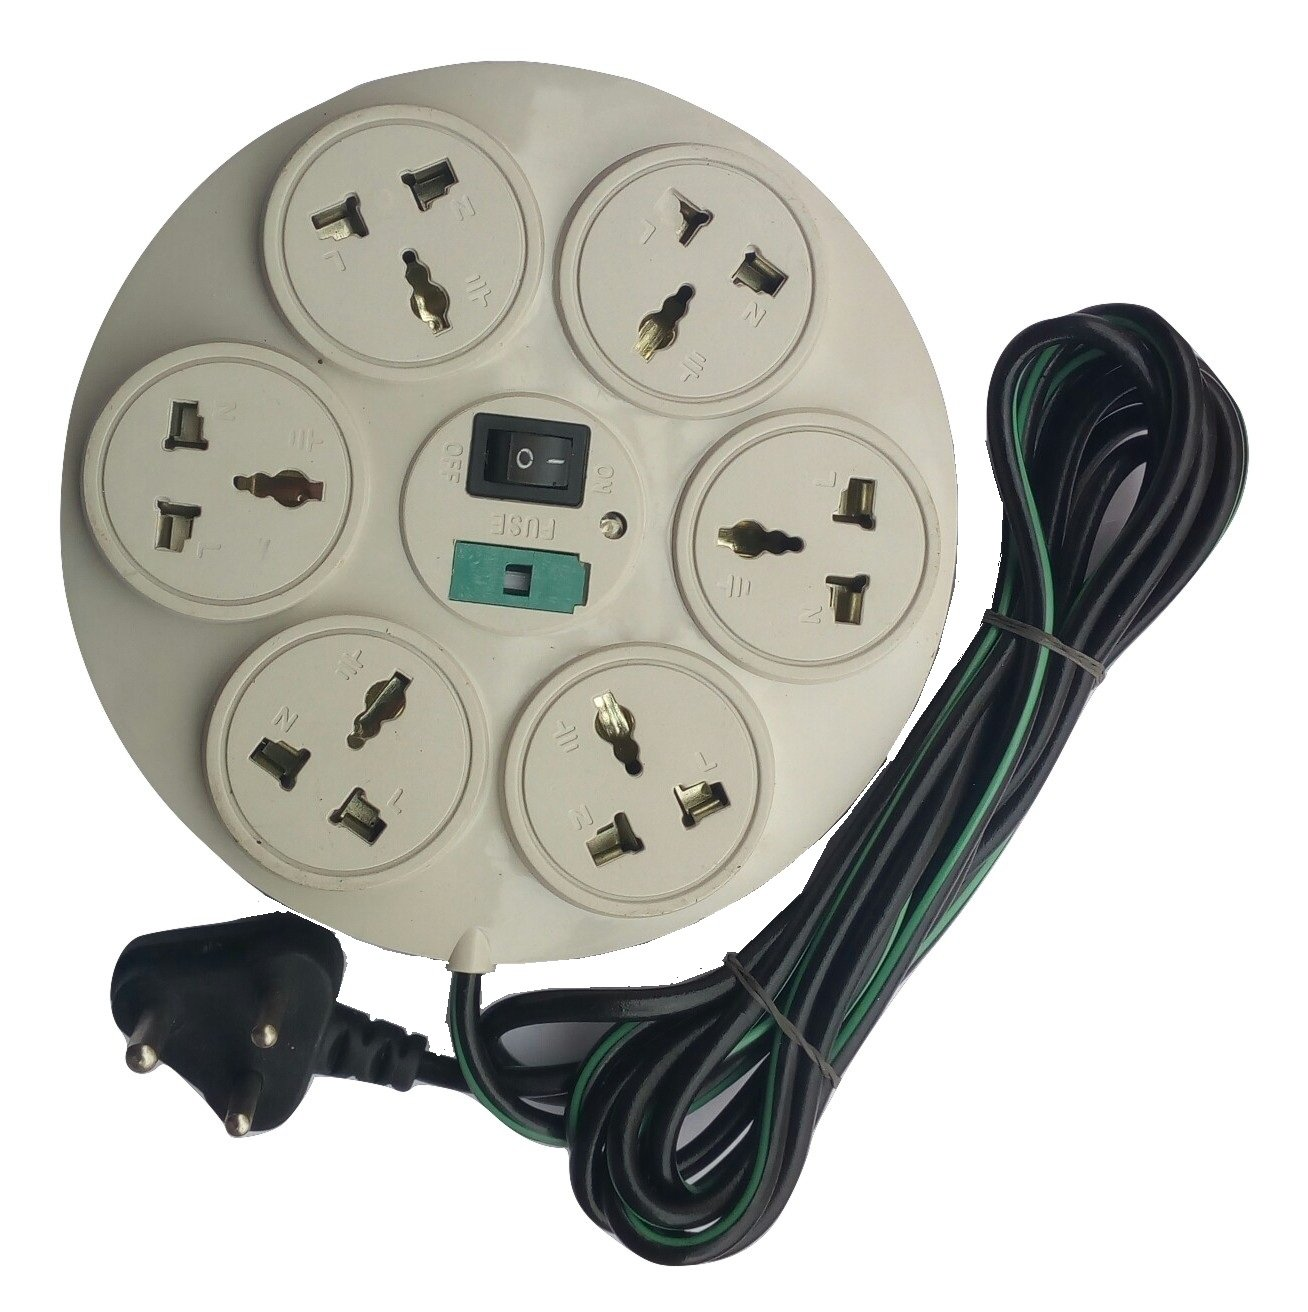 Buy Gadget Deals 360 Degree 6 1 Sockets Power Strip Extension Cord Wiring Plug Board Multi 4yard Online At Low Prices In India